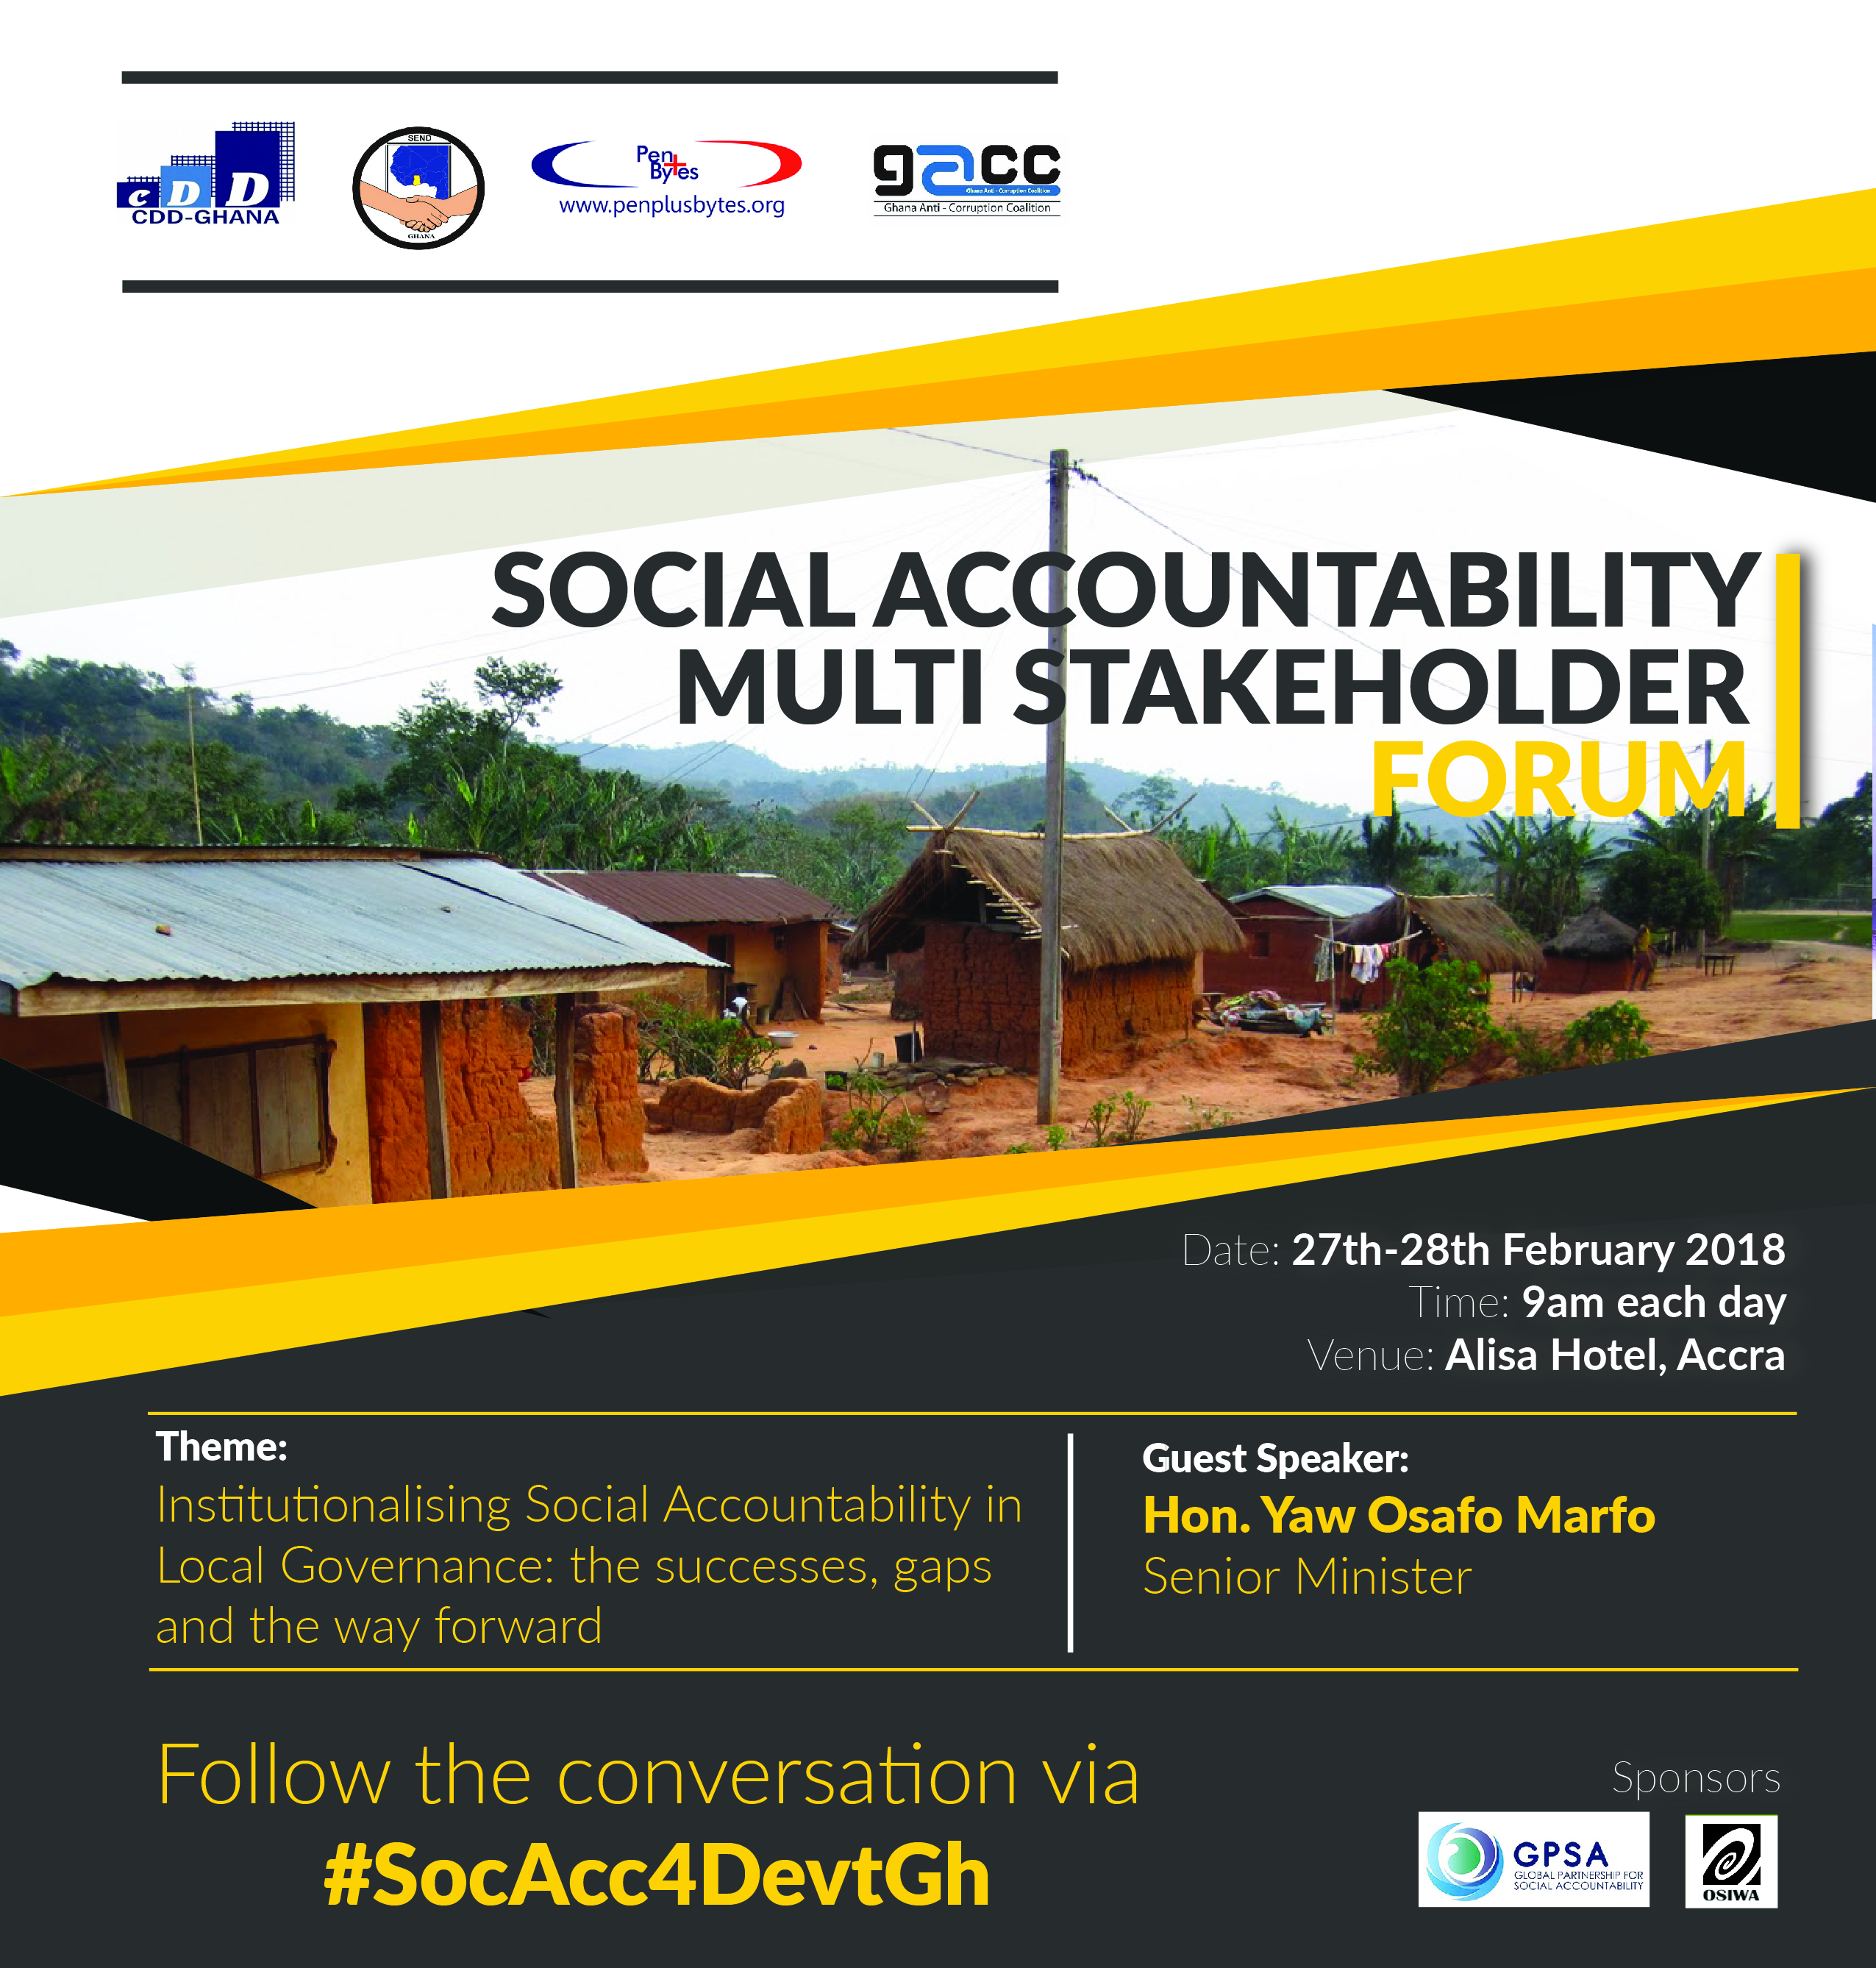 2-day Social Accountability Multi Stakeholder Forum takes off in Accra